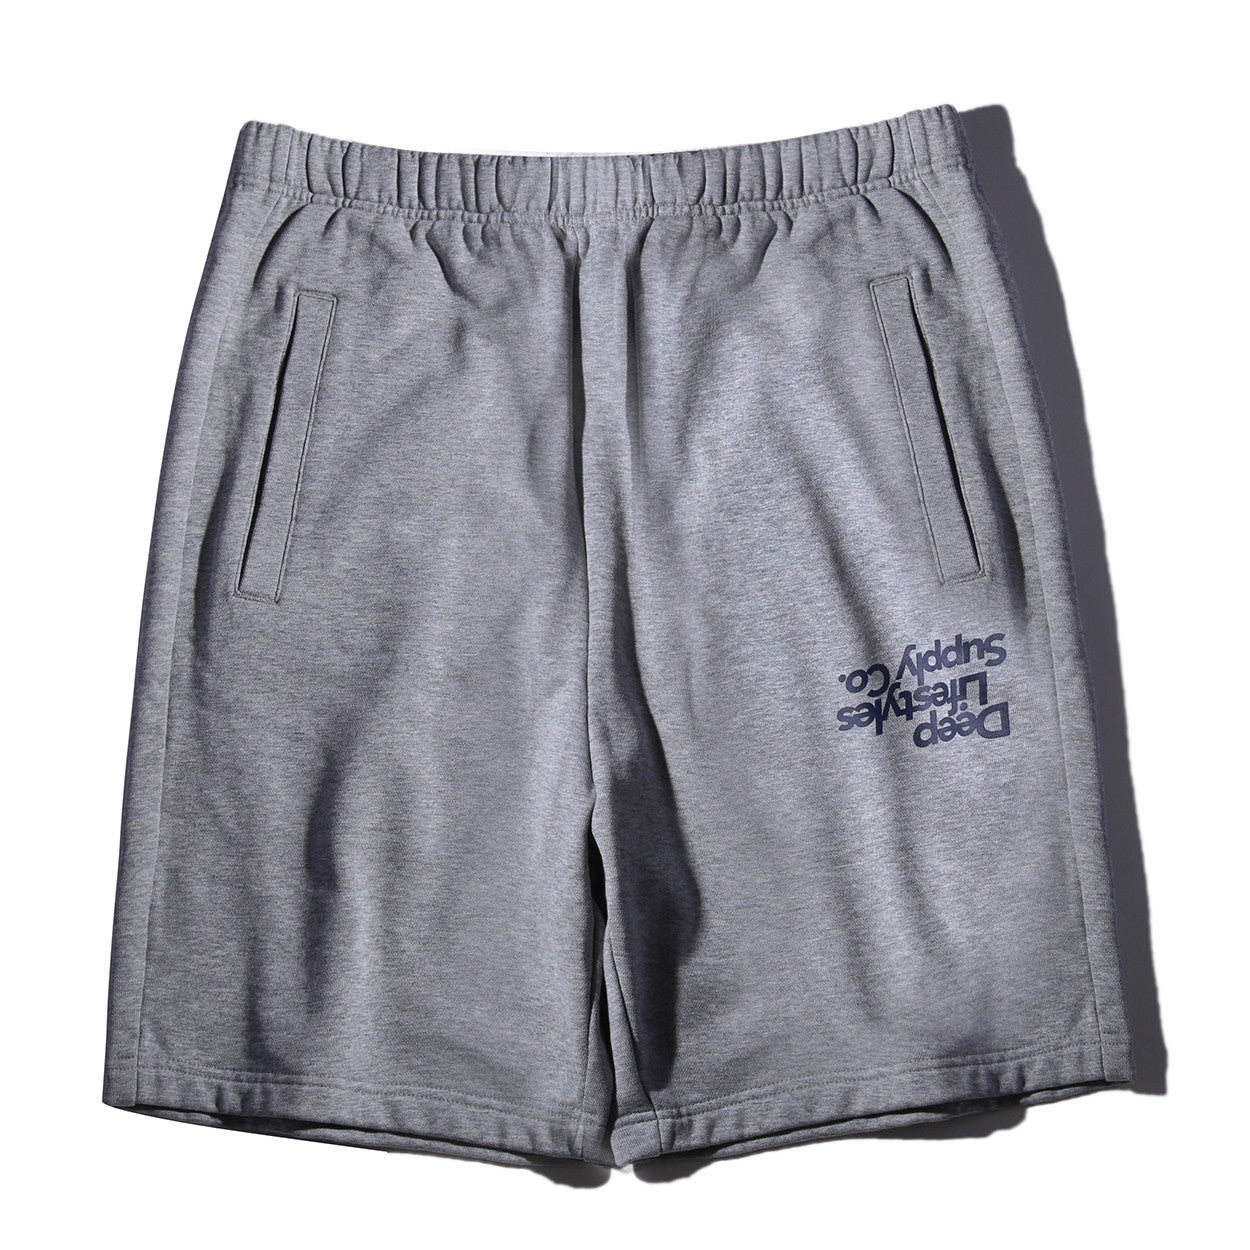 FRENCH TERRY SHORTS - HEATHER GRAY